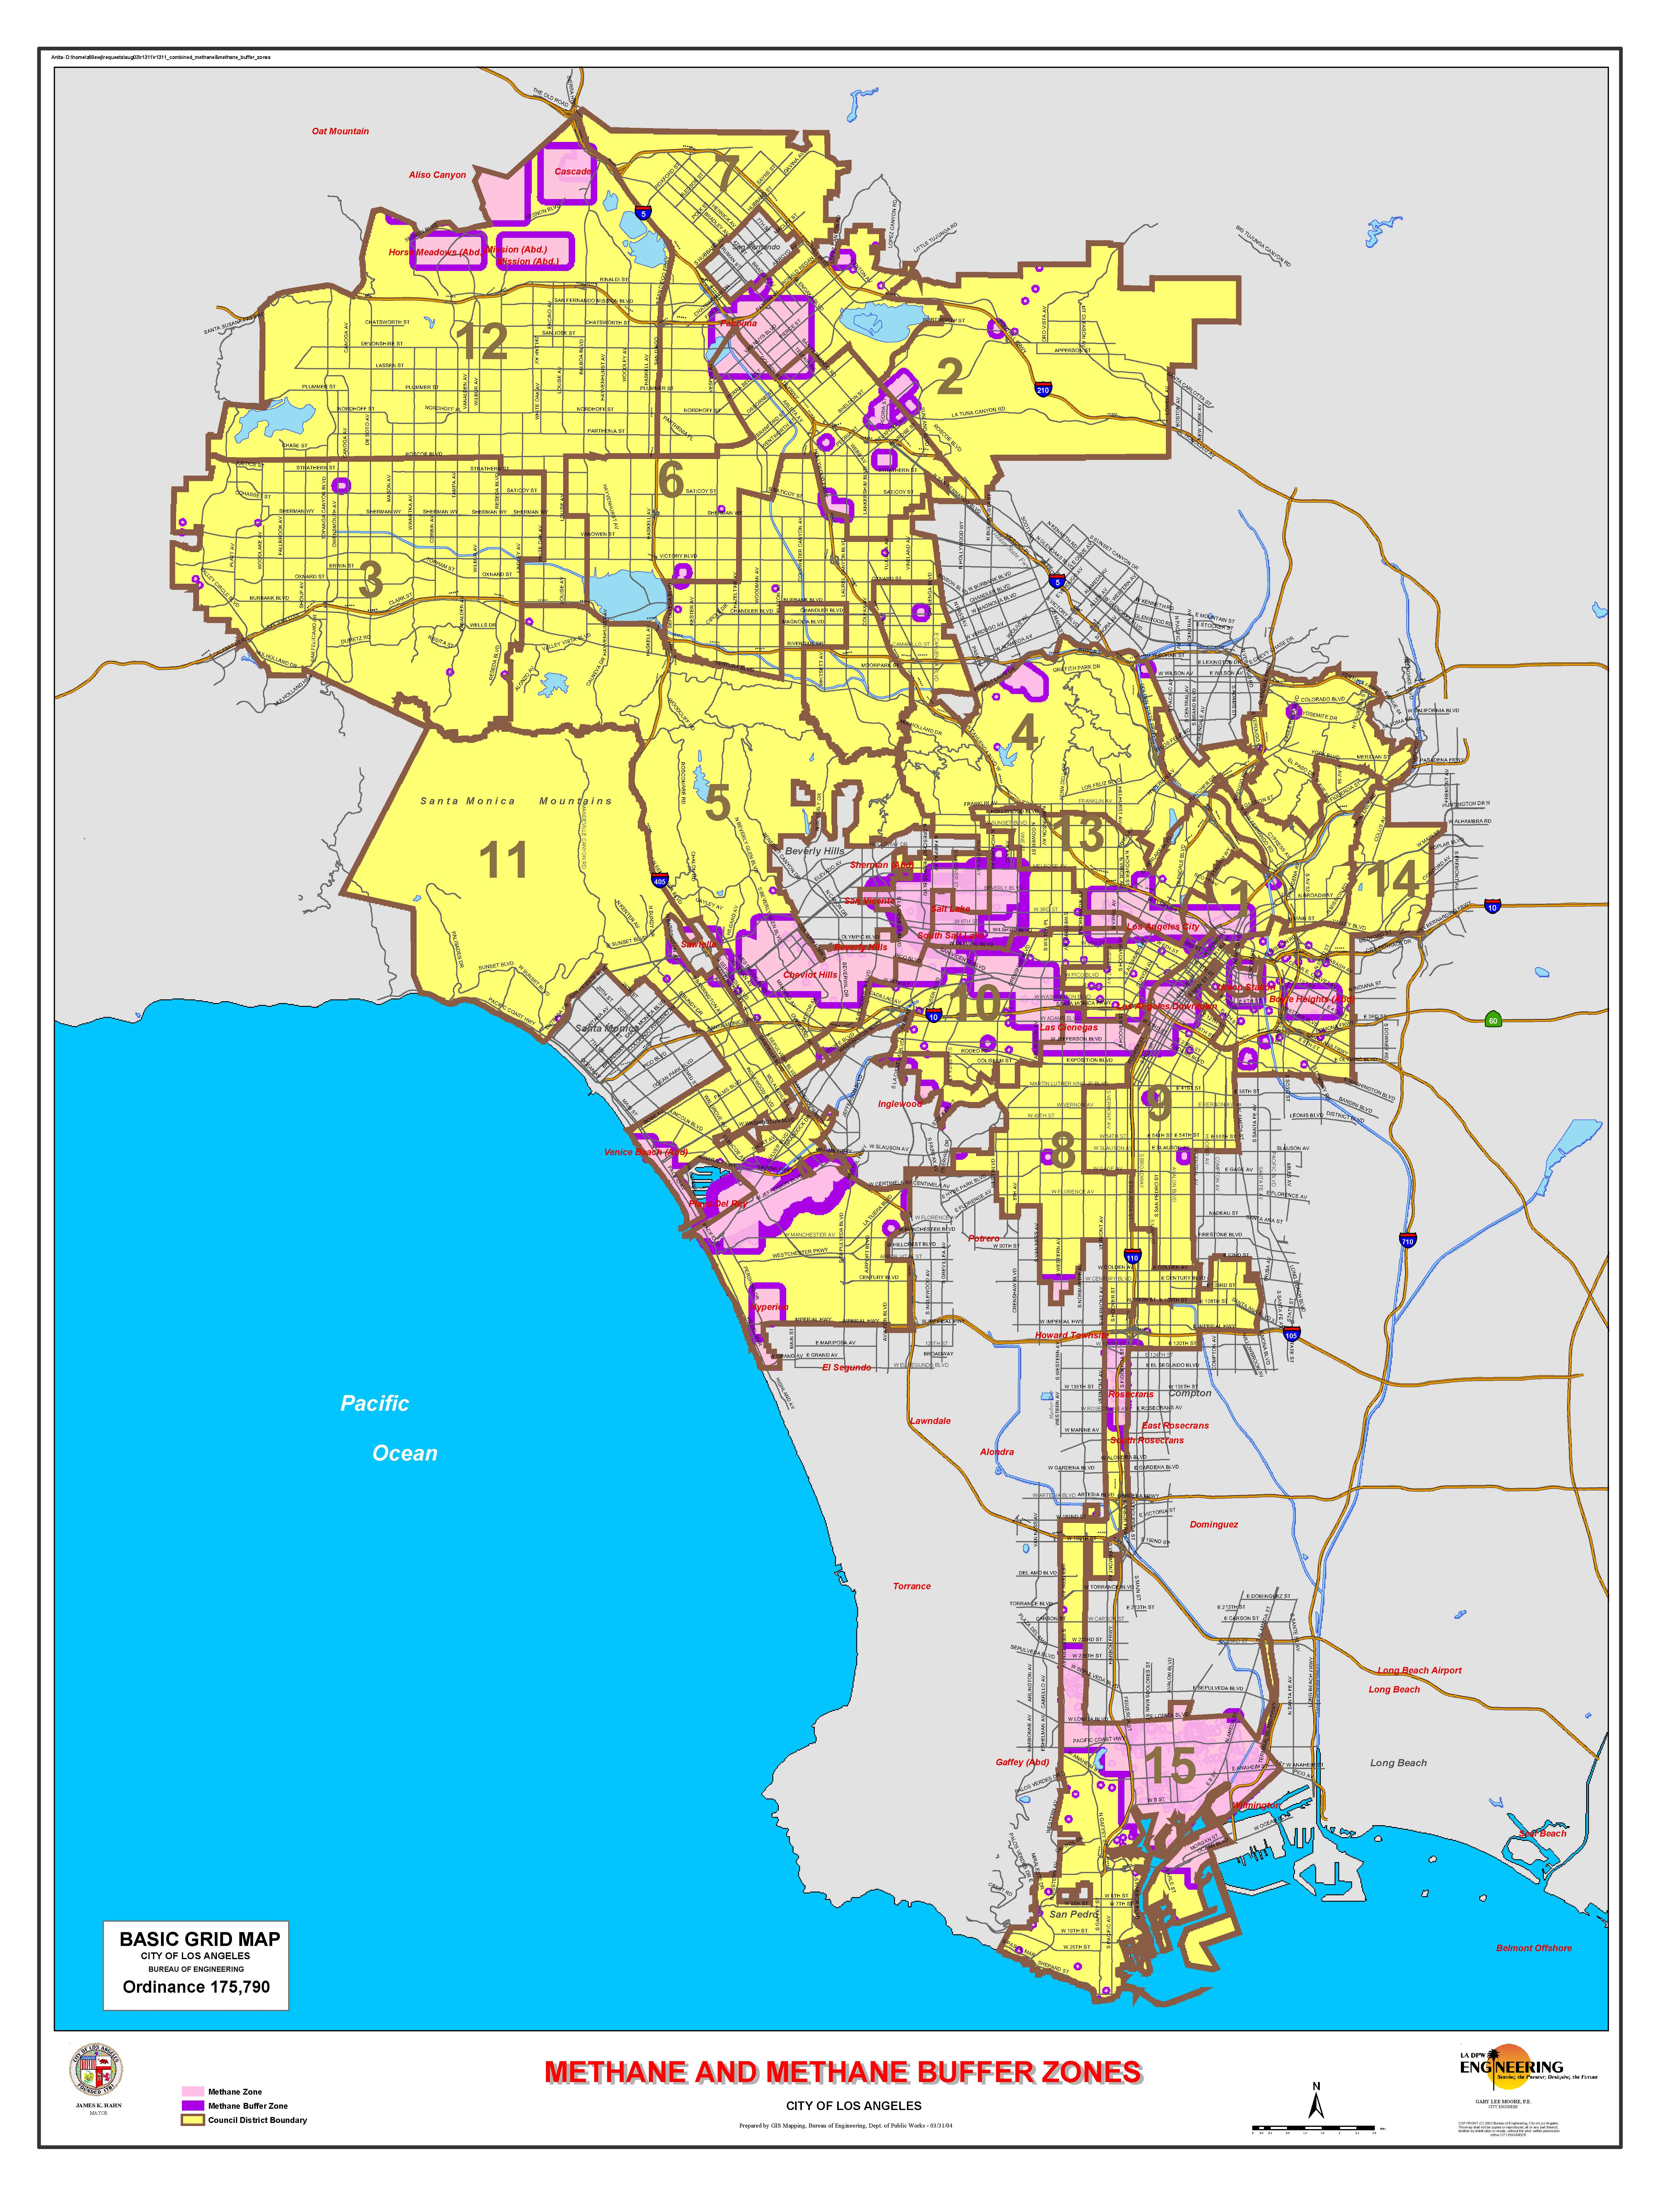 Los Angeles Methane Zone Map